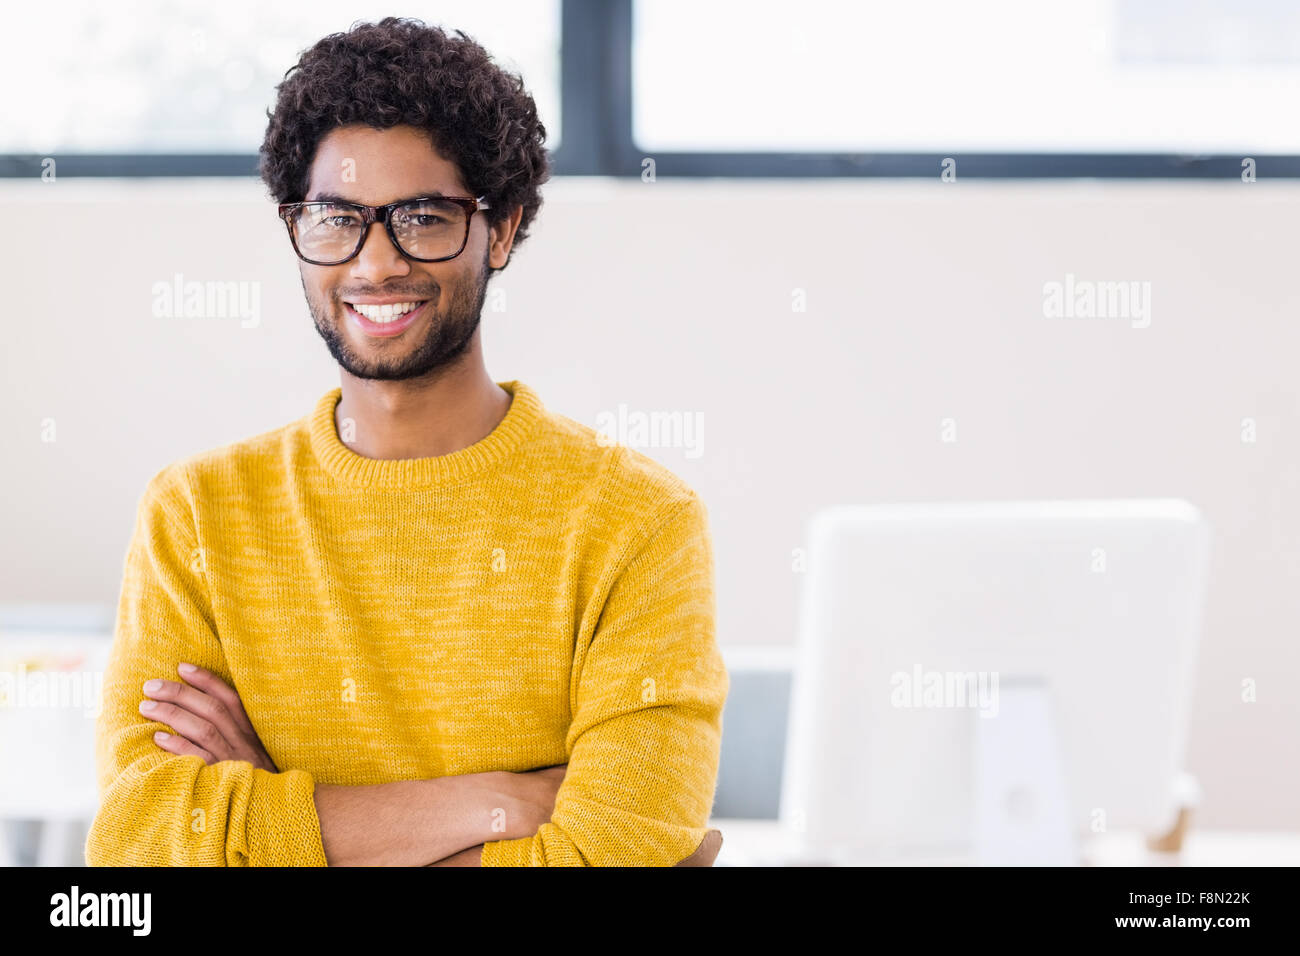 Portrait of attractive man smiling at camera Photo Stock